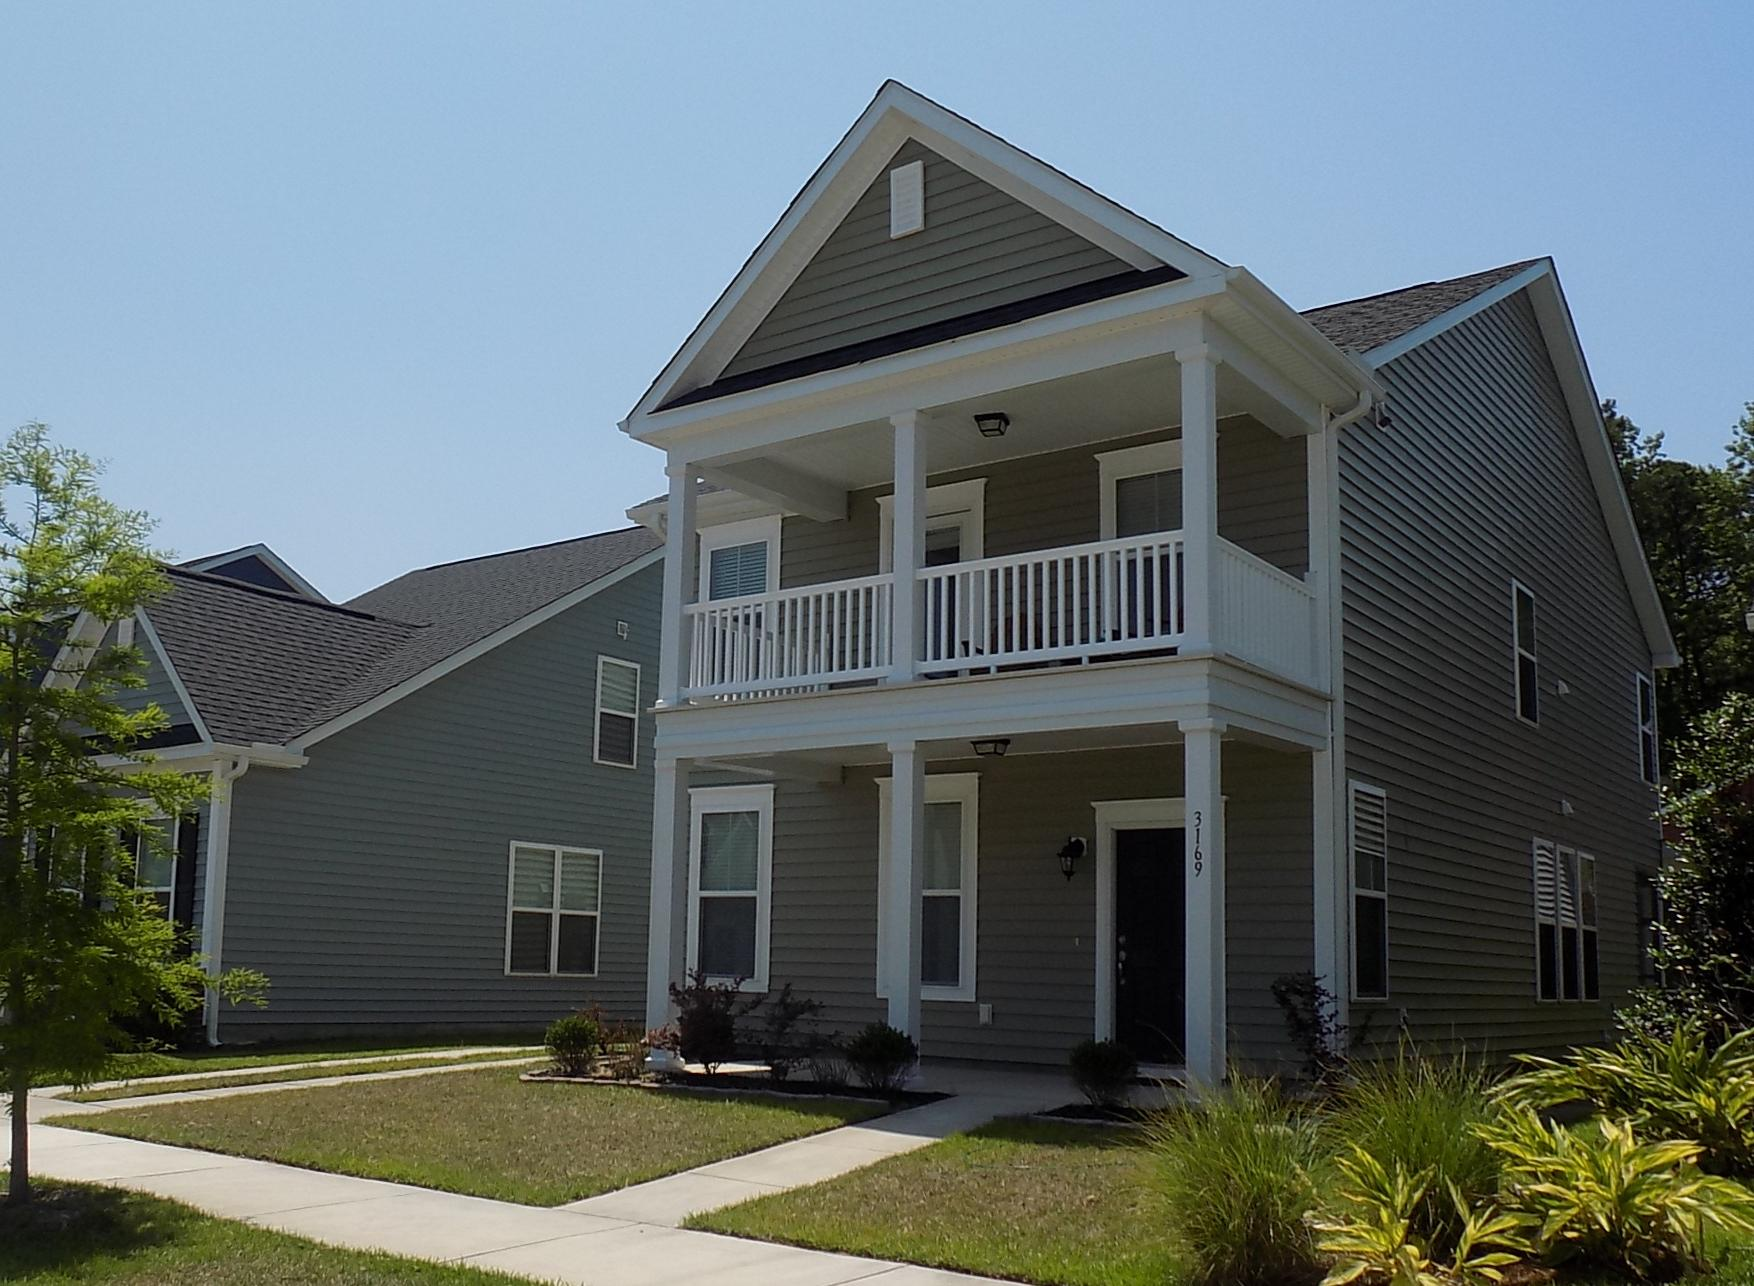 Boltons Landing Homes For Sale - 3169 Moonlight, Charleston, SC - 0